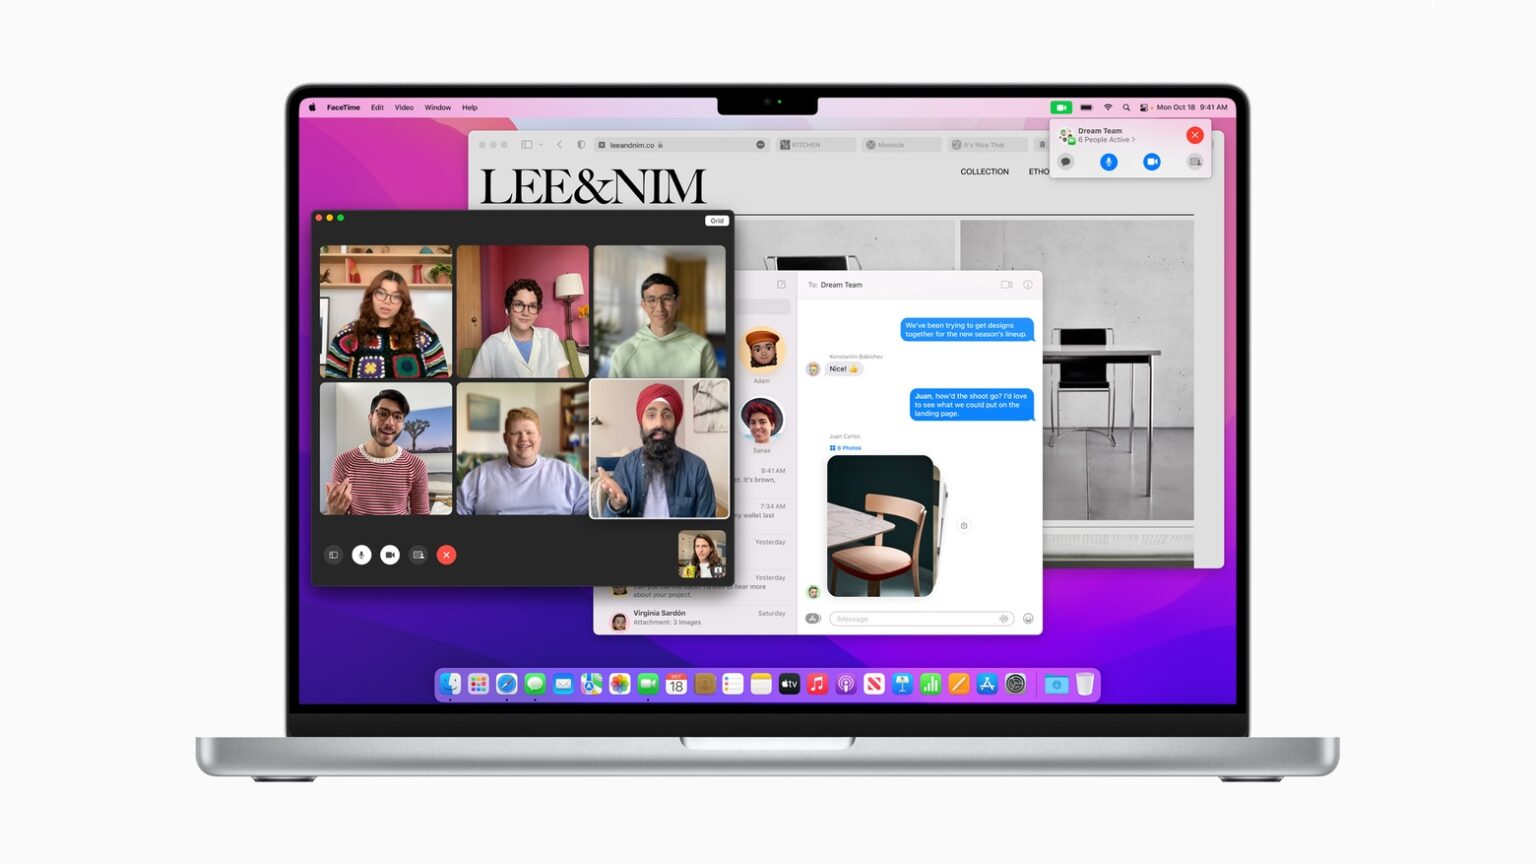 macOS Monterey brings powerful new features to Macs.